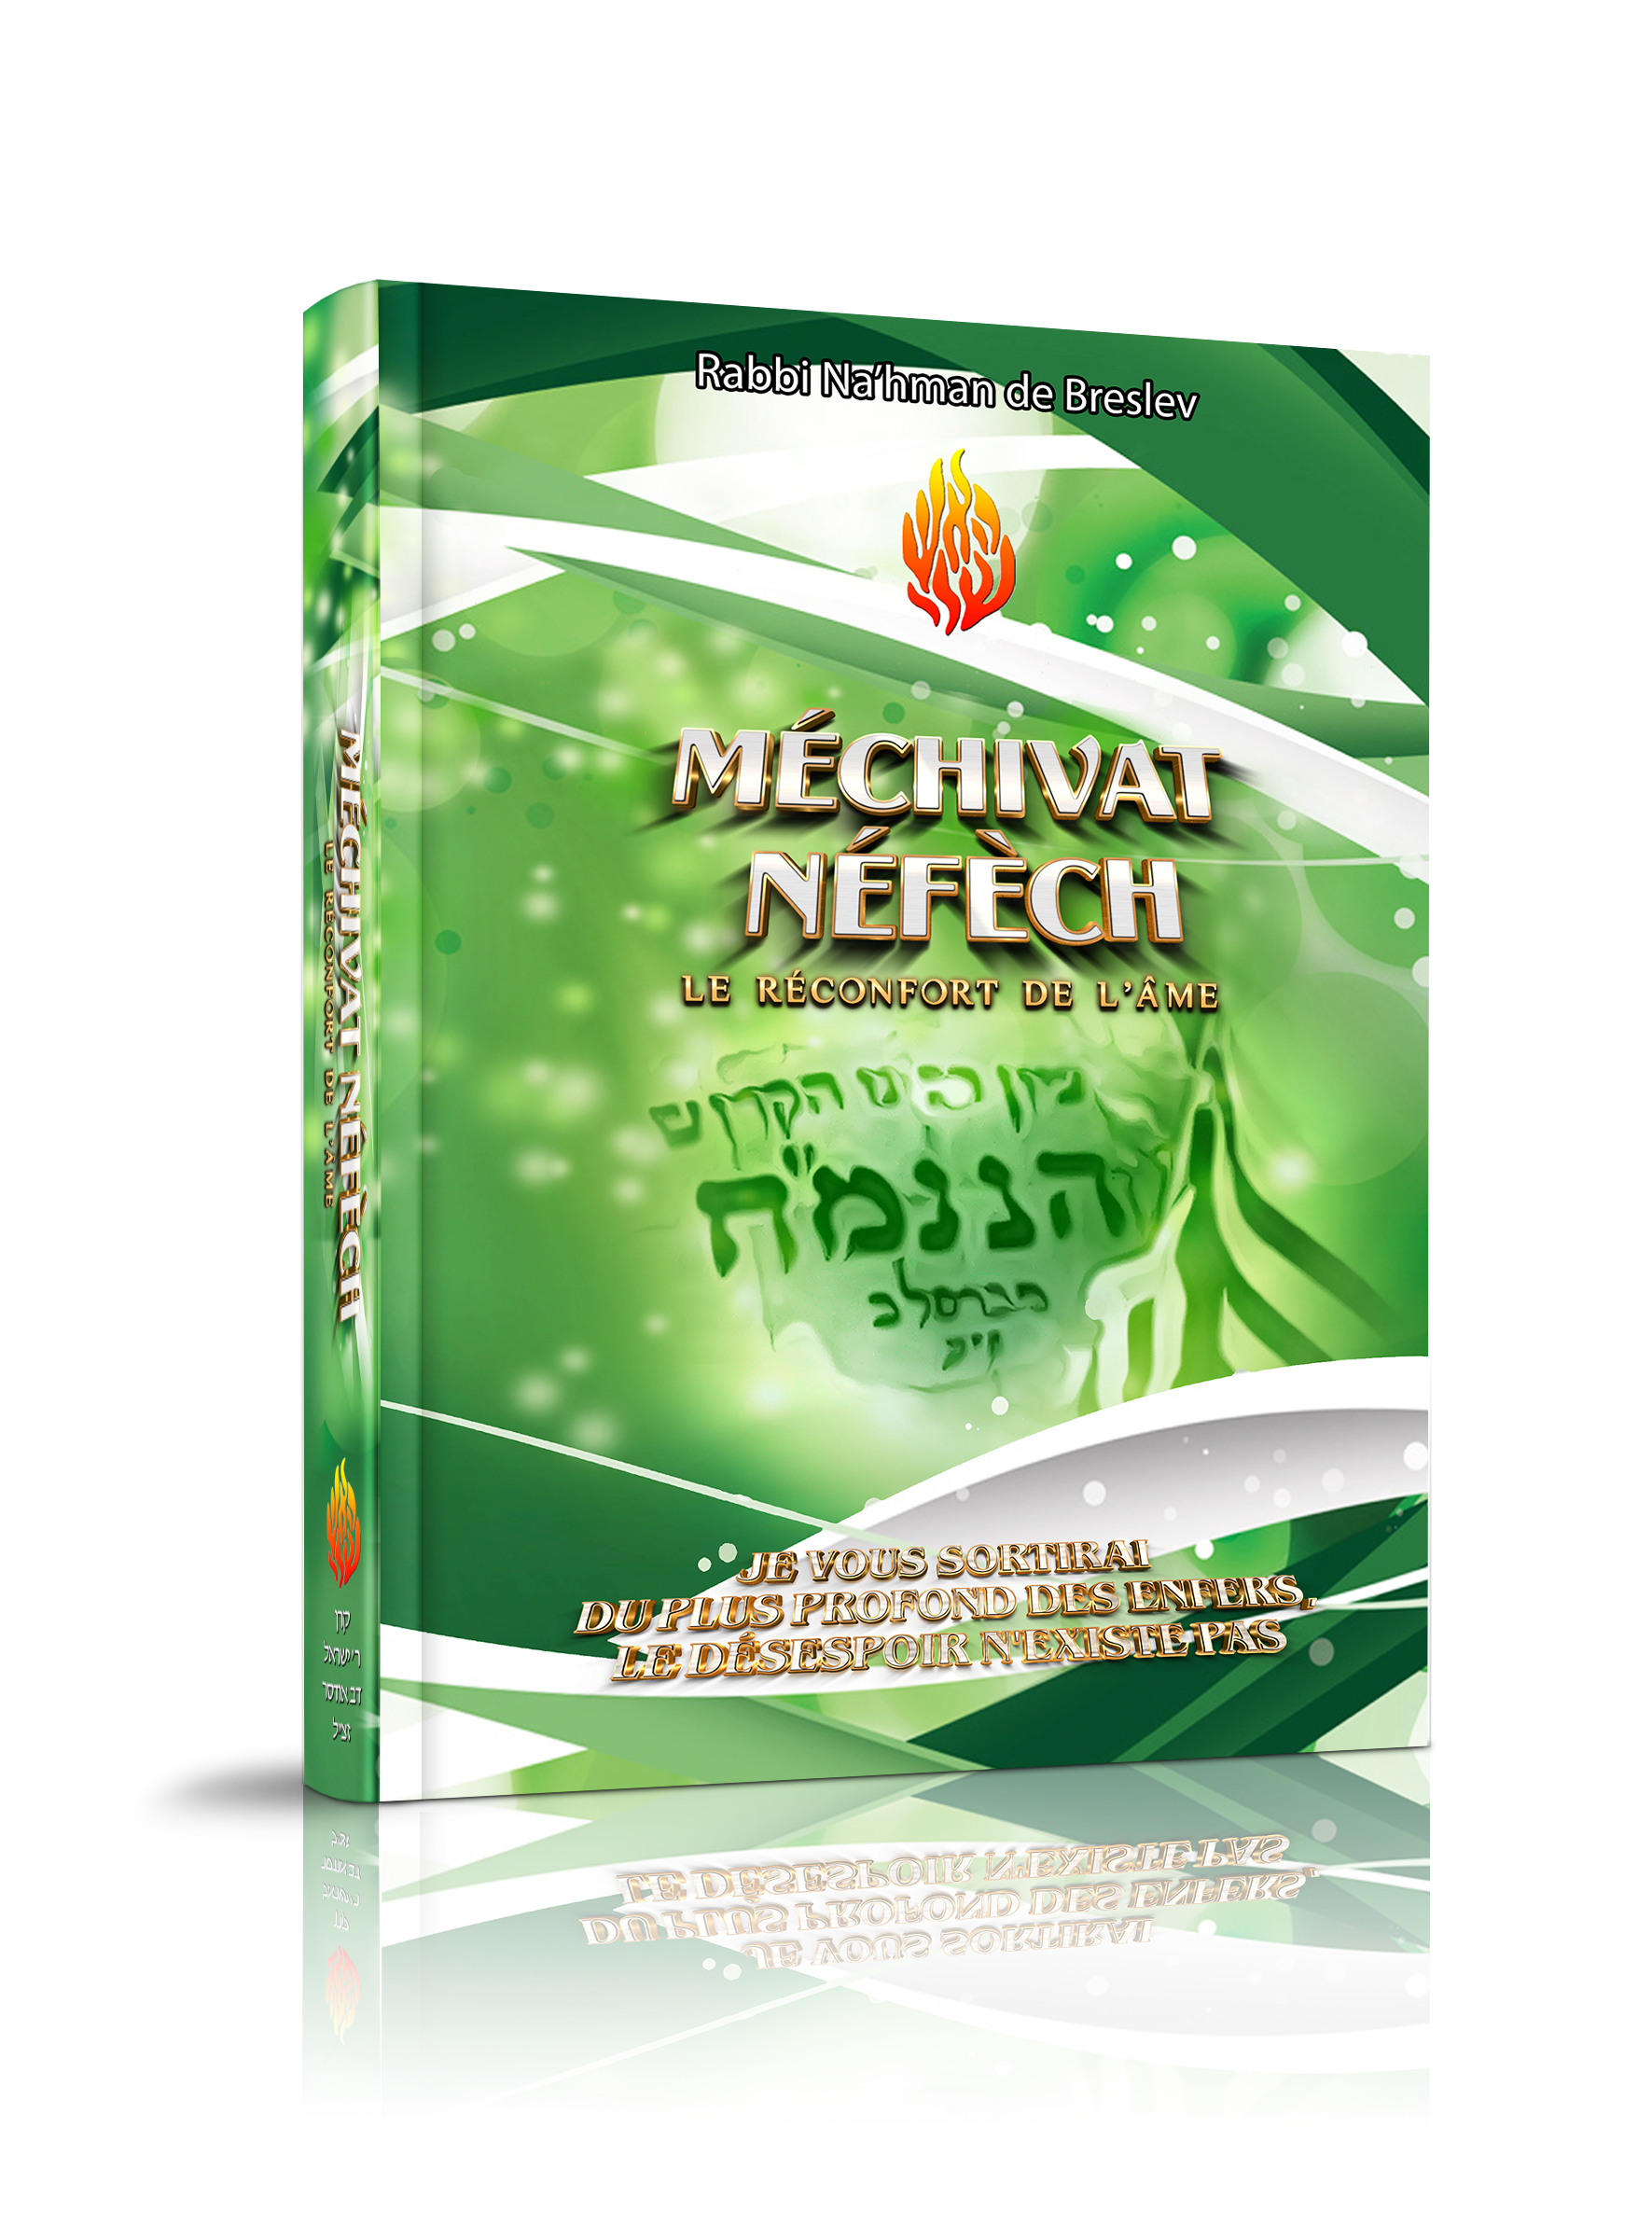 MECHIVAT NEFECH FINALE